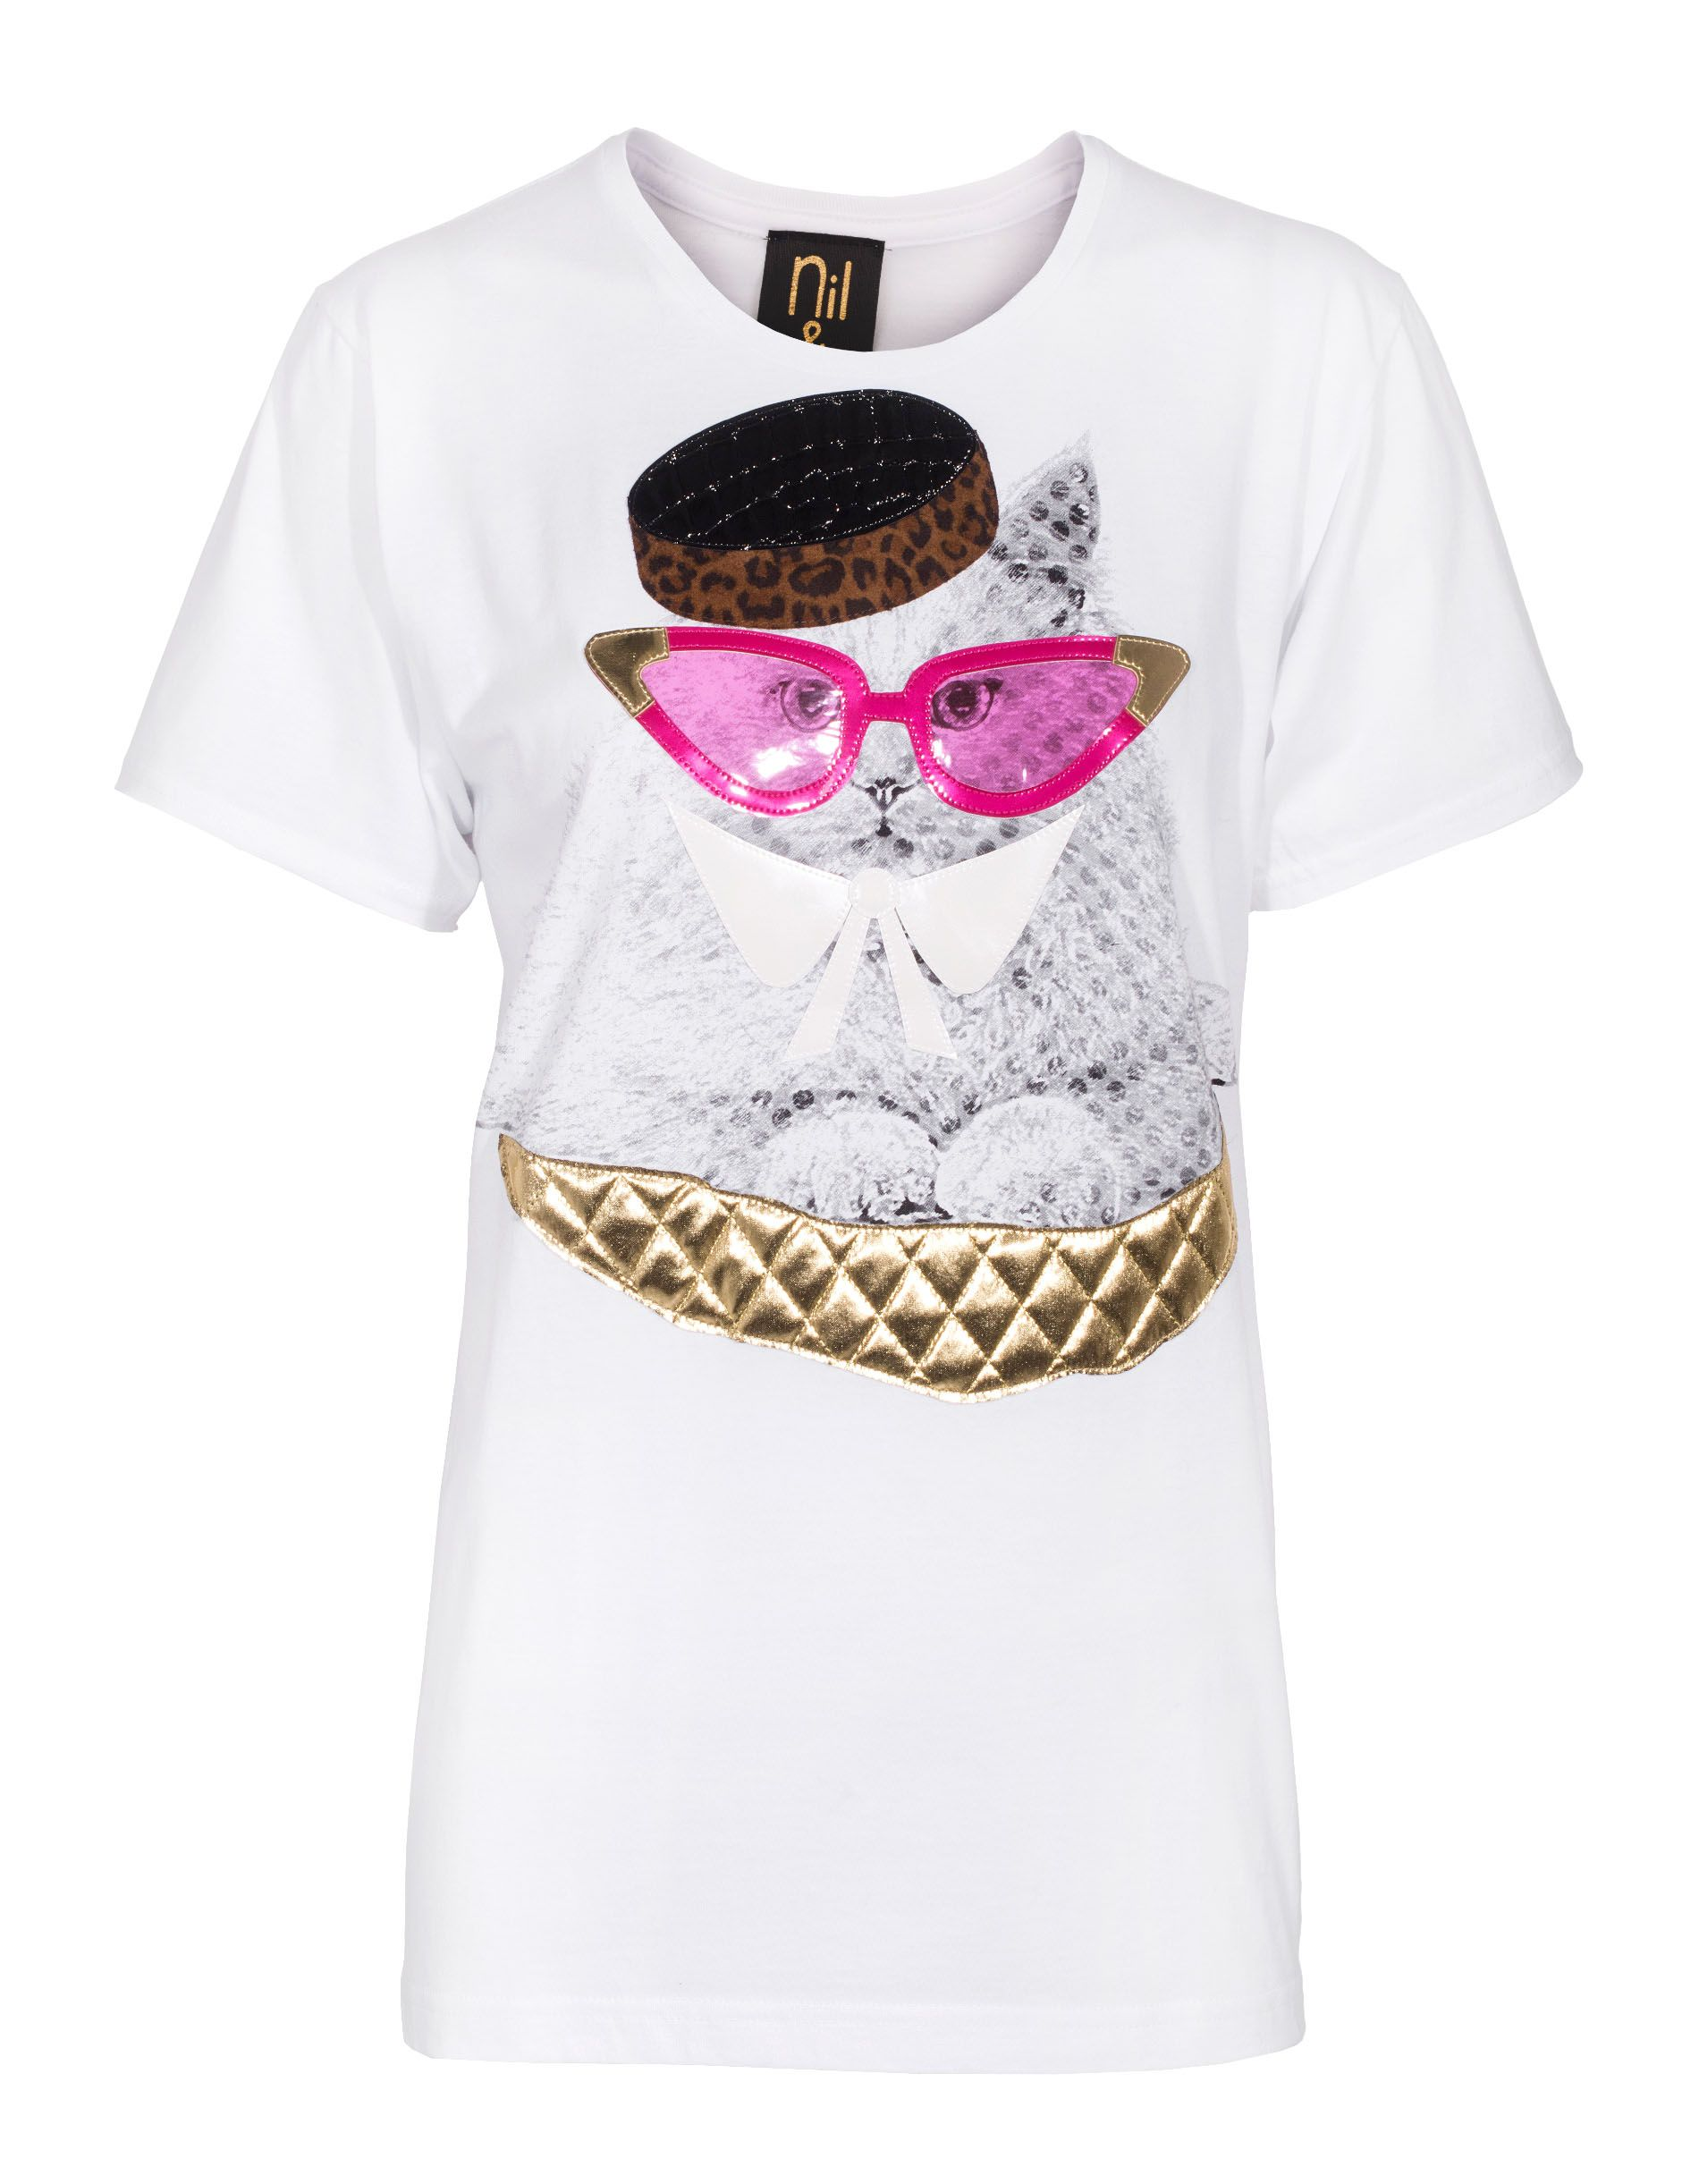 Nil&Mon Miau Miau White Oversize T-shirt with decoration - T-Shirts & Tanks